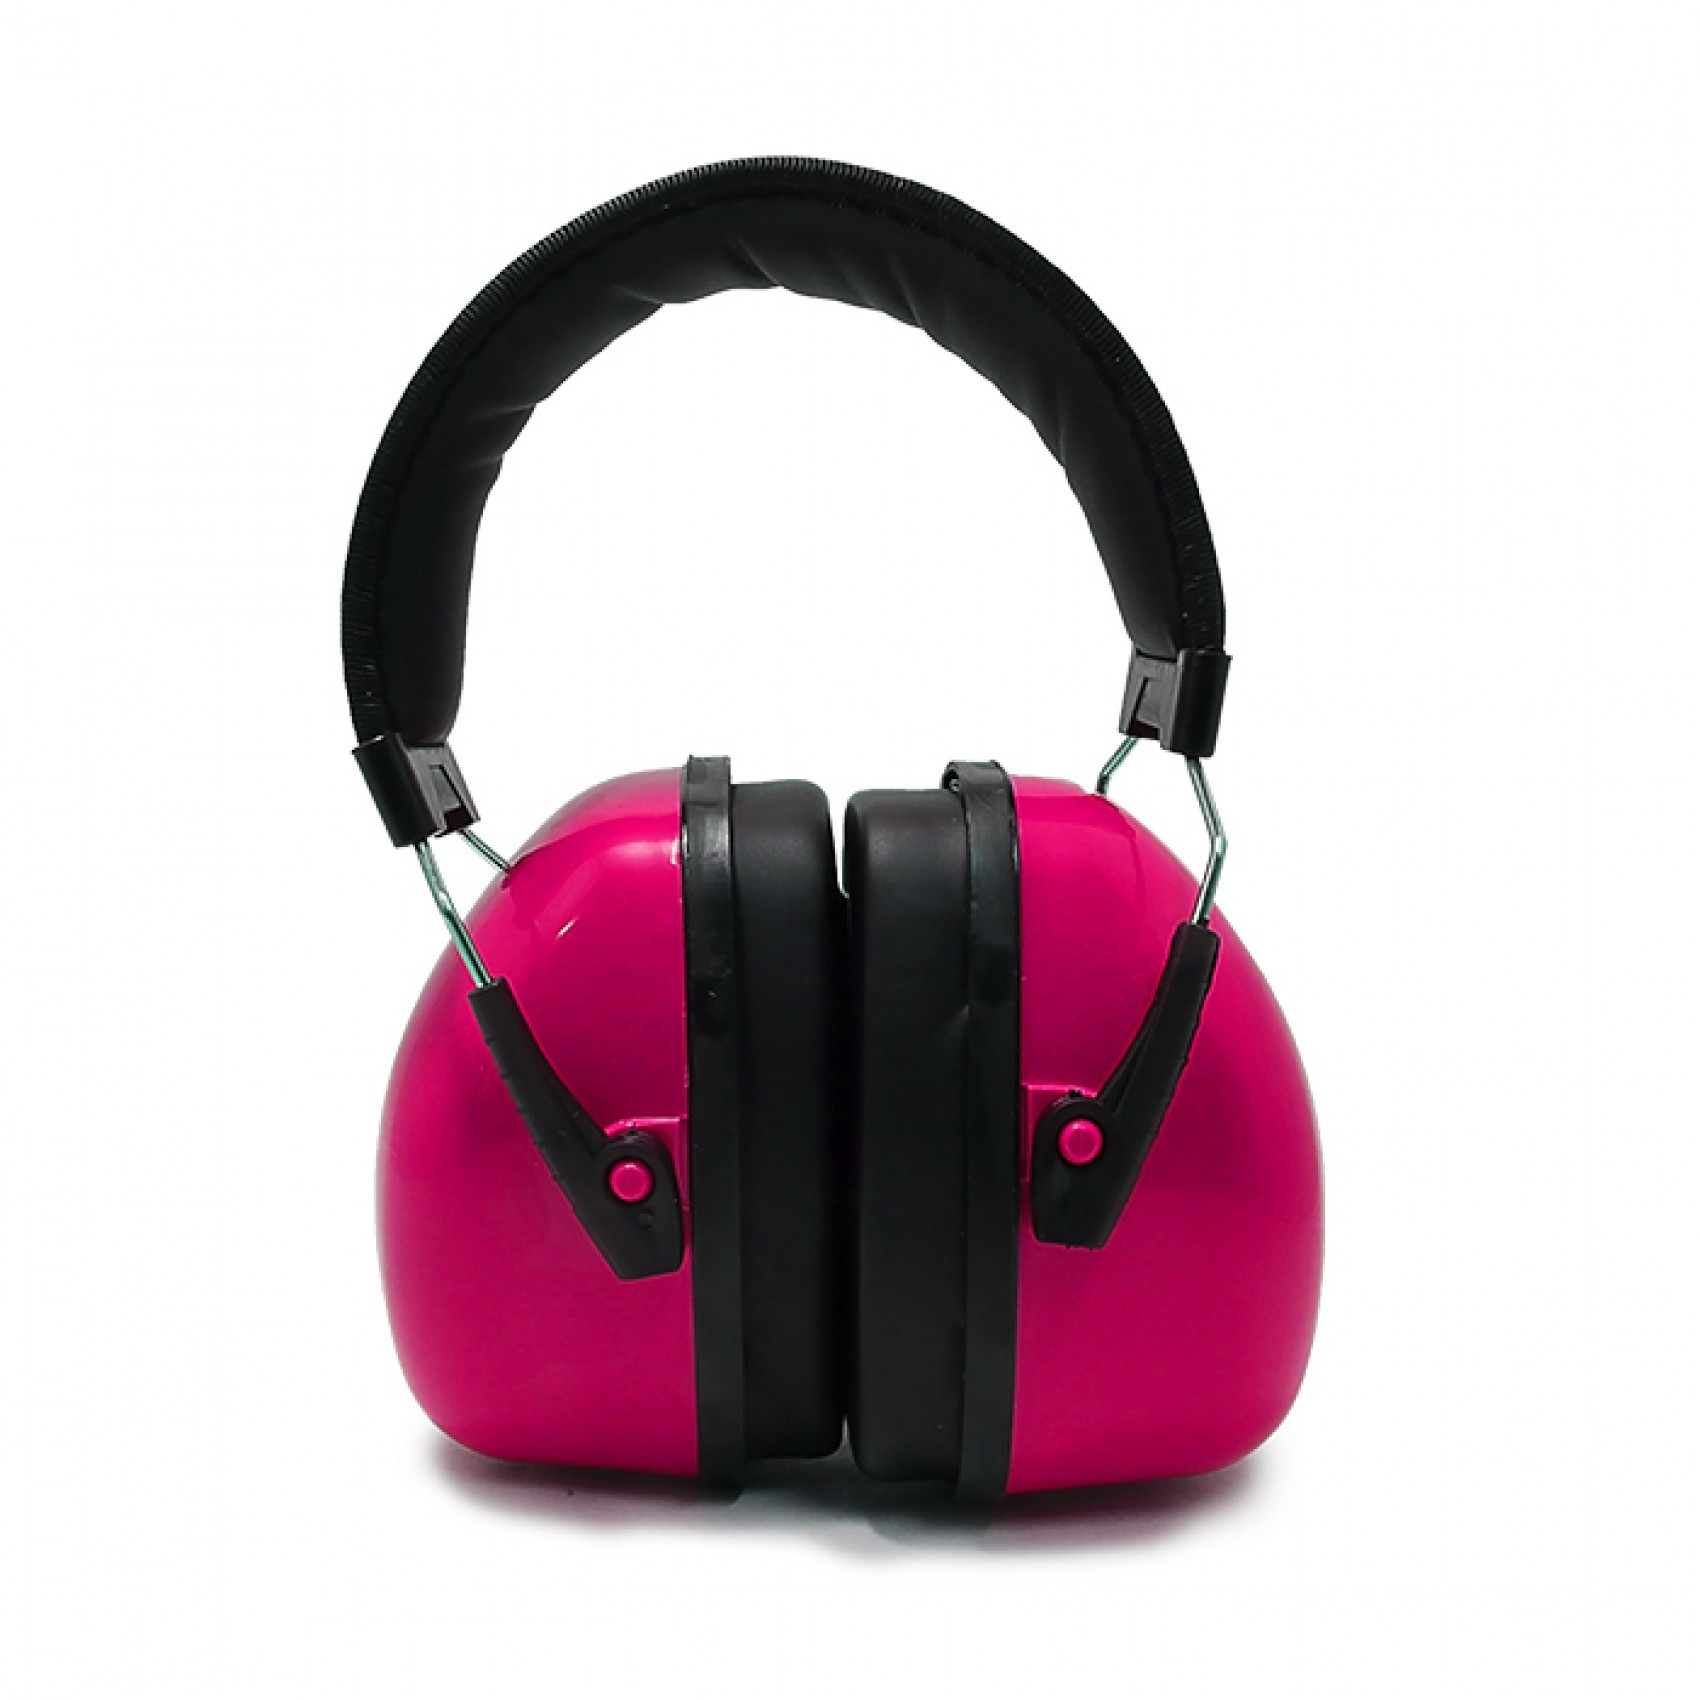 Noise Reduction Ear Muff Hearing Protection Headset - Pink